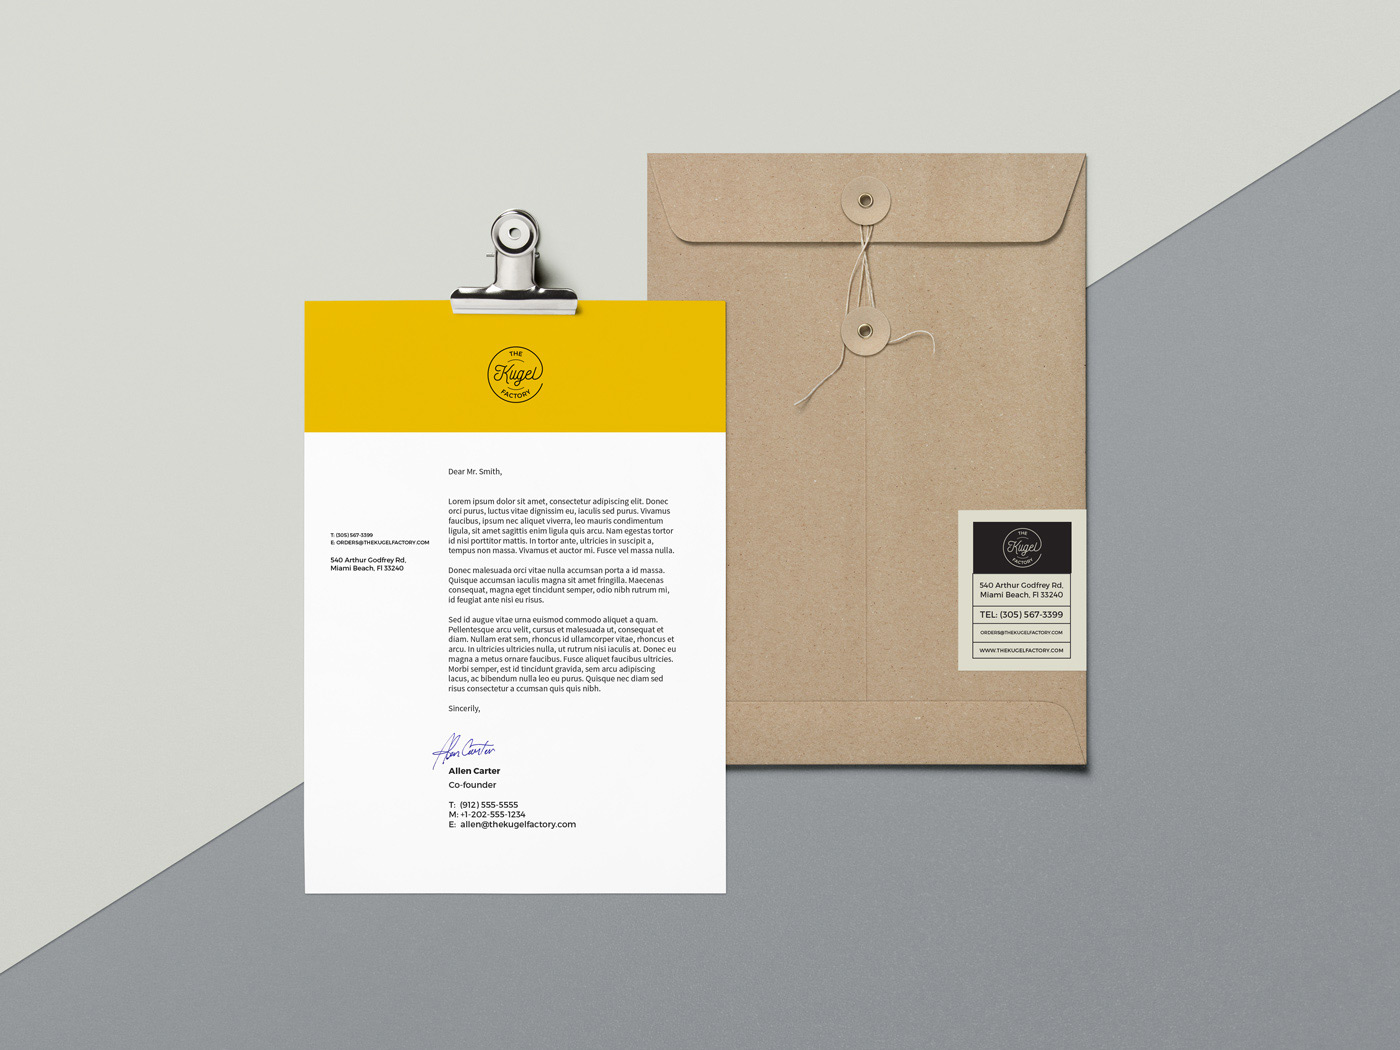 The Kugel Factory Card Business Letterhead